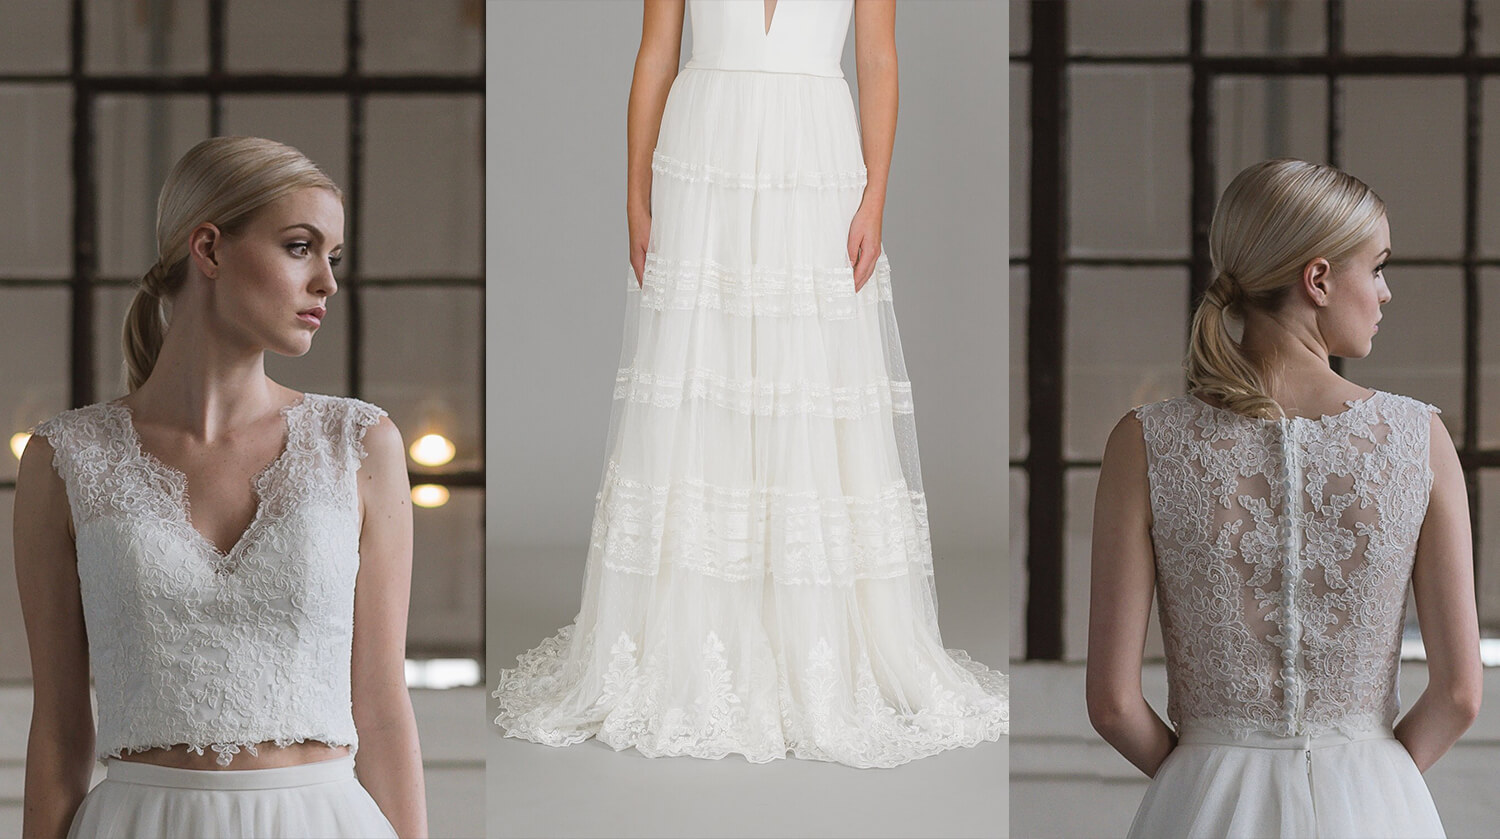 A lace top paired with a lacy skirt for a breezy spring wedding gown.